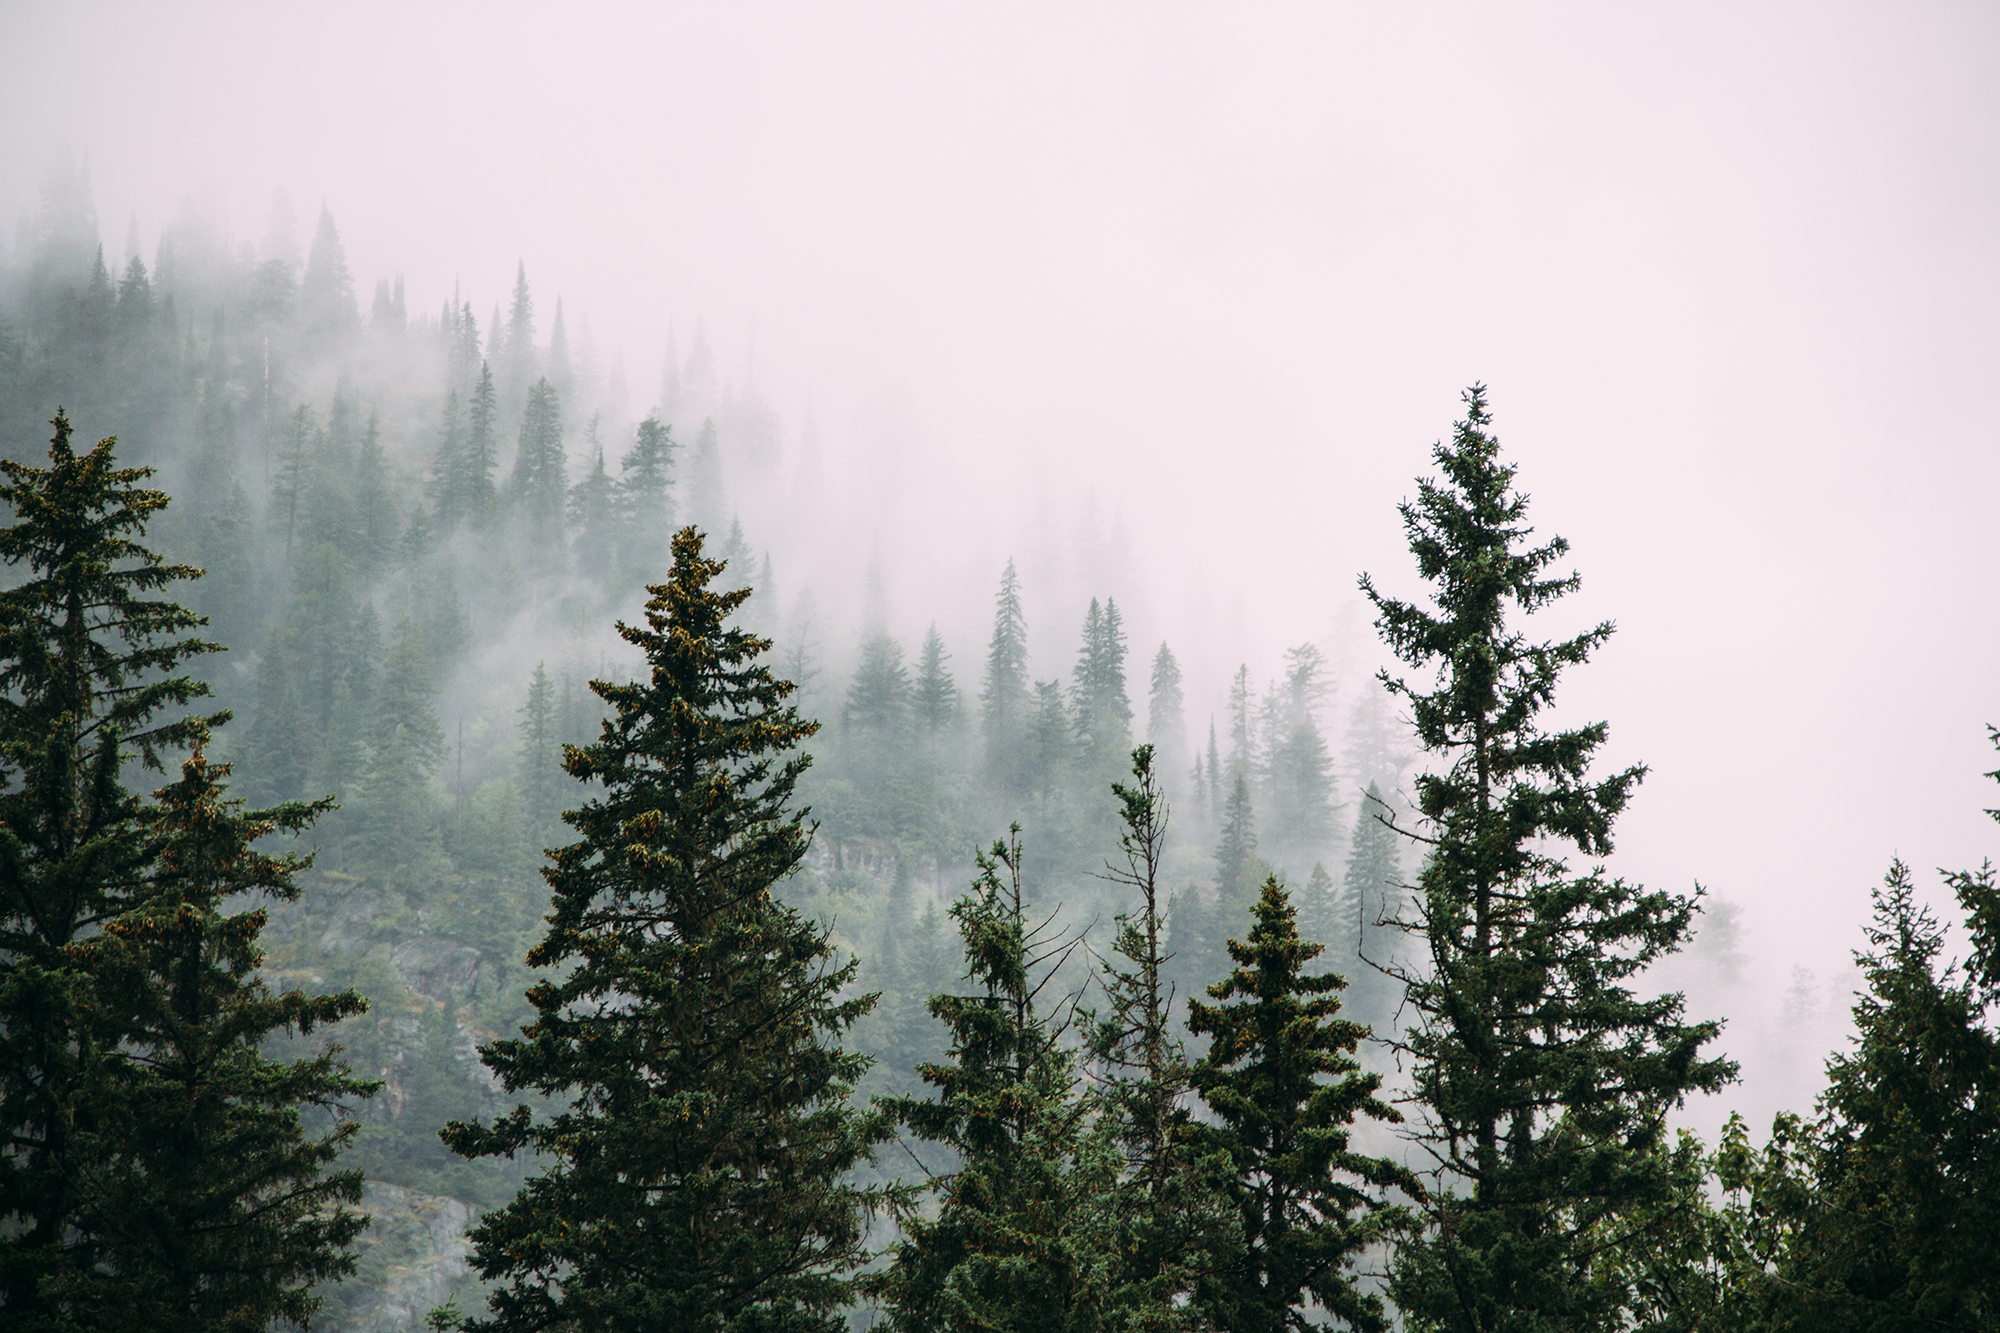 A forest shrouded in mist.